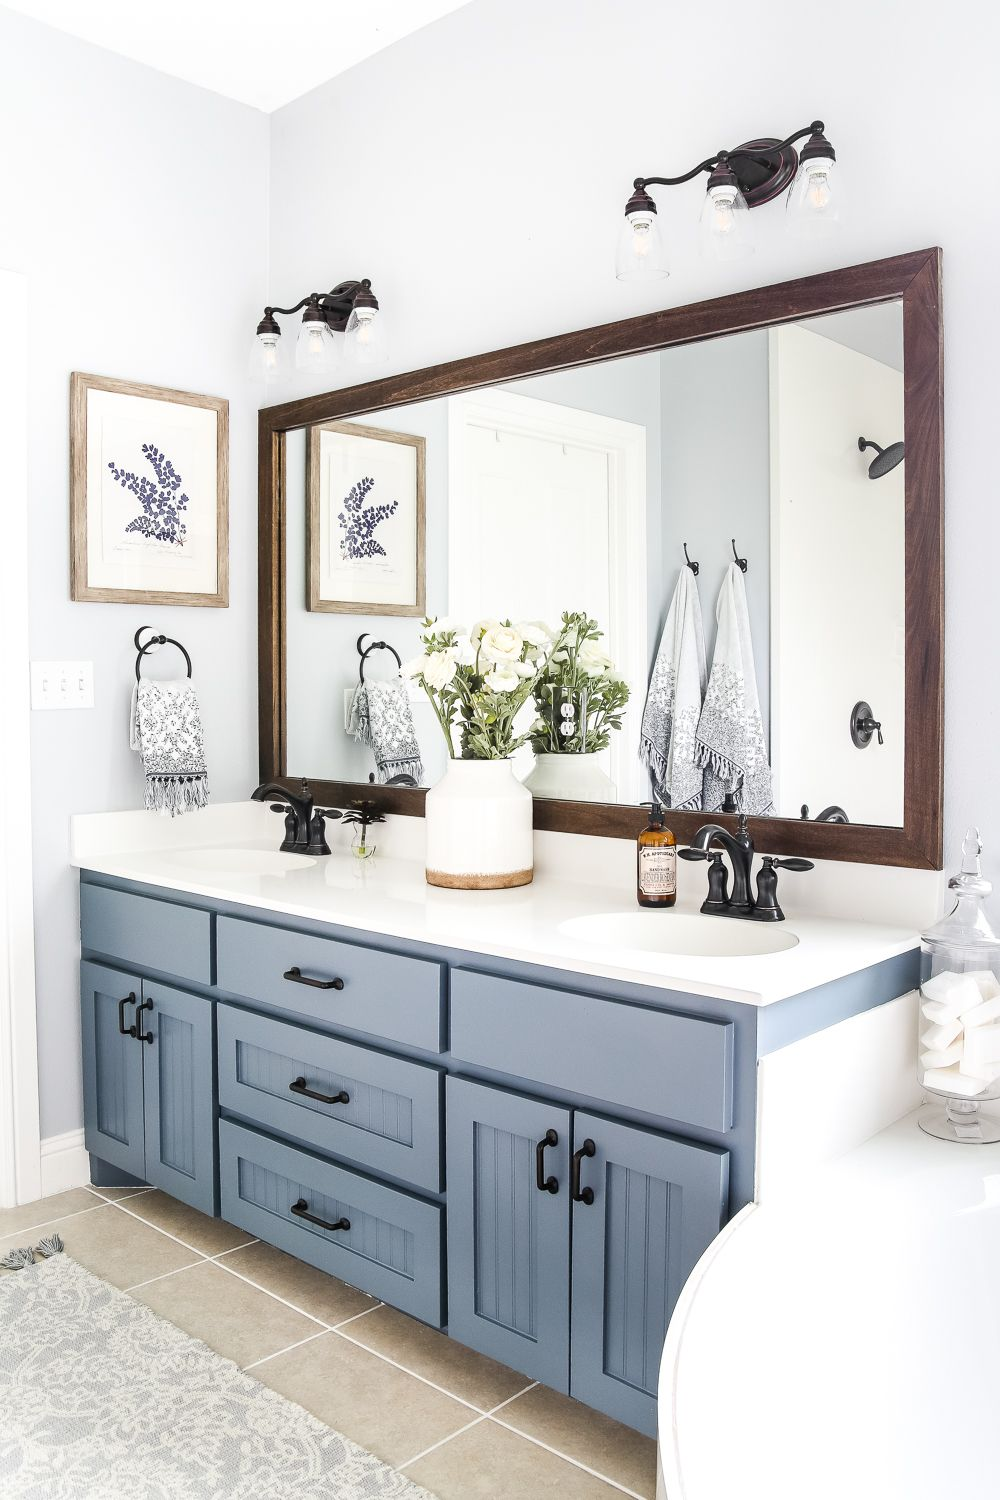 Rustic bathroom designs the key is to be bold original and - Industrial Rustic Master Bath Retreat